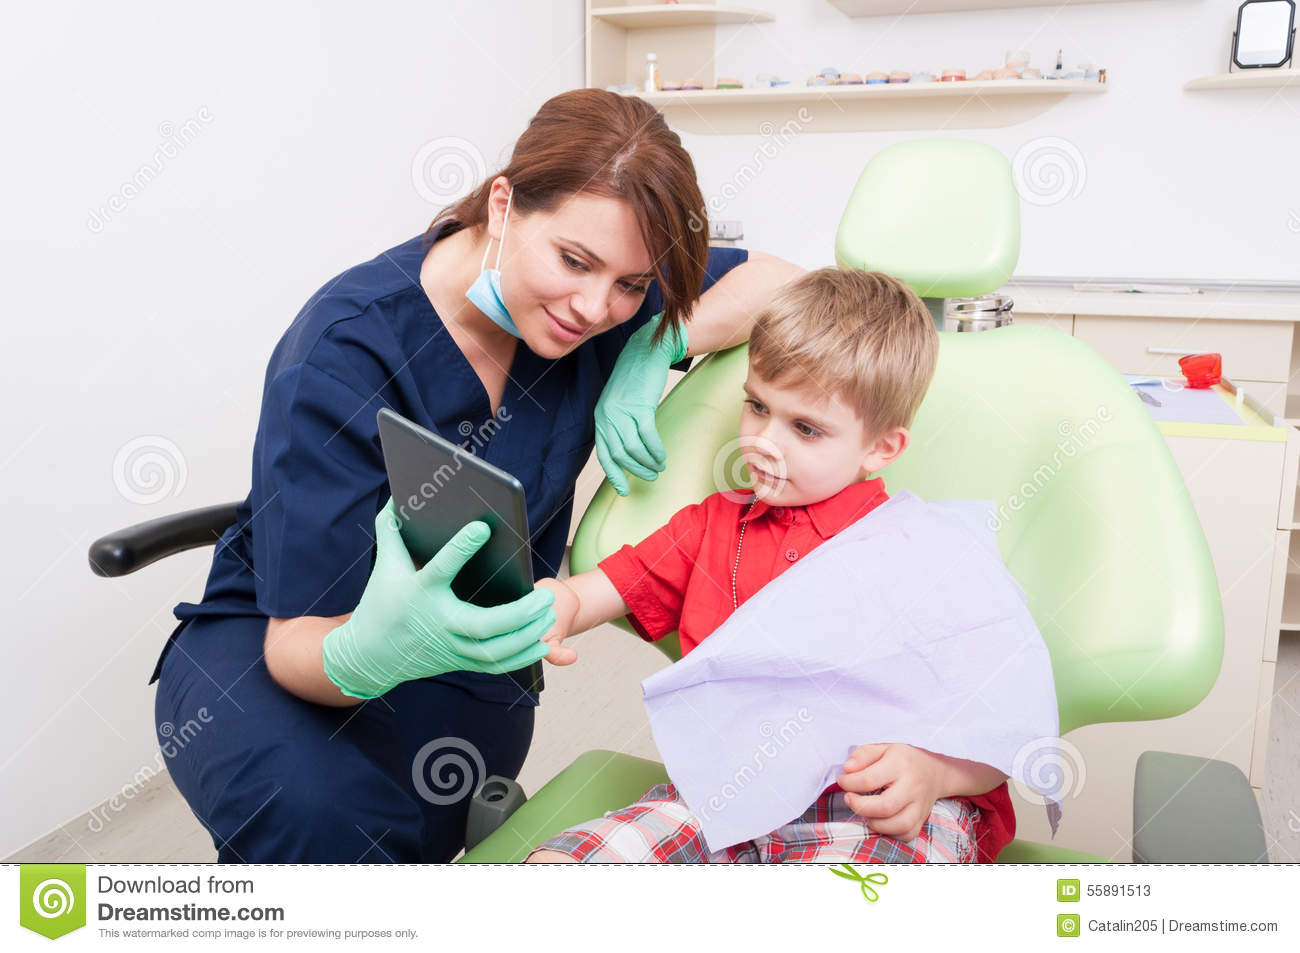 Female dentist using tablet to relax kid patient